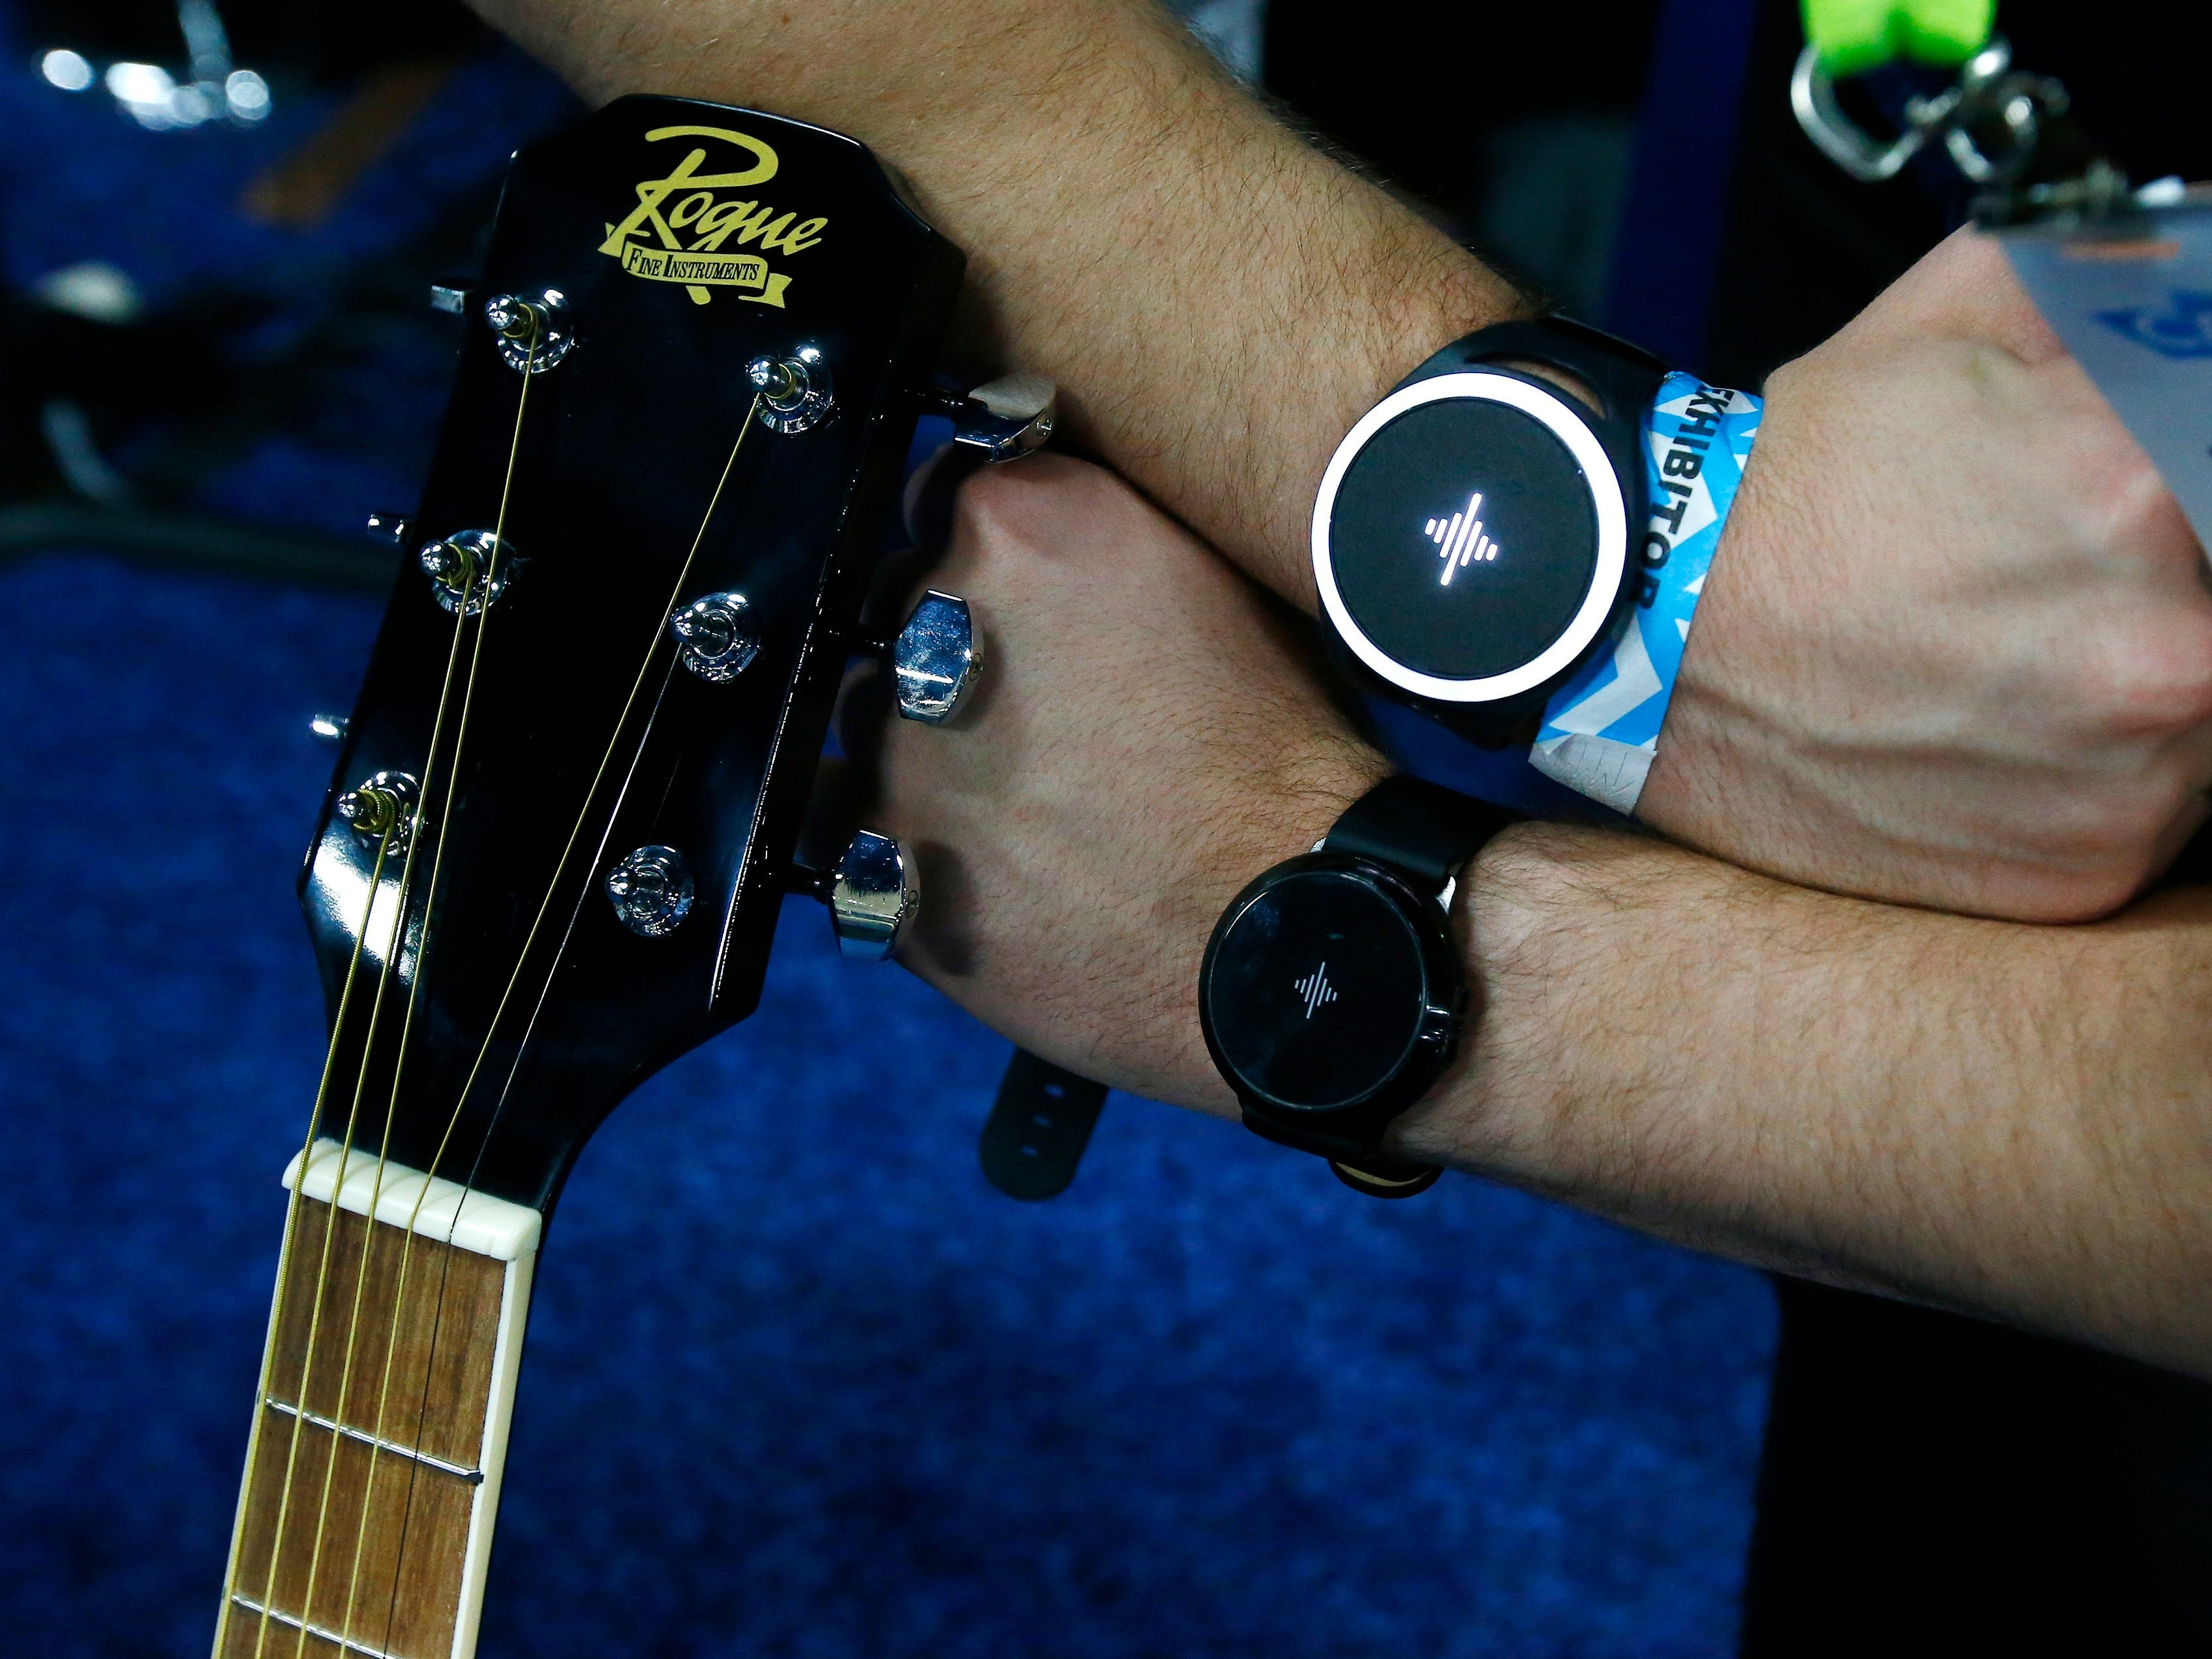 The Soundbrenner Pulse, the top version is a vibrating metronome, with the newer model also being a watch and a guitar tuner.